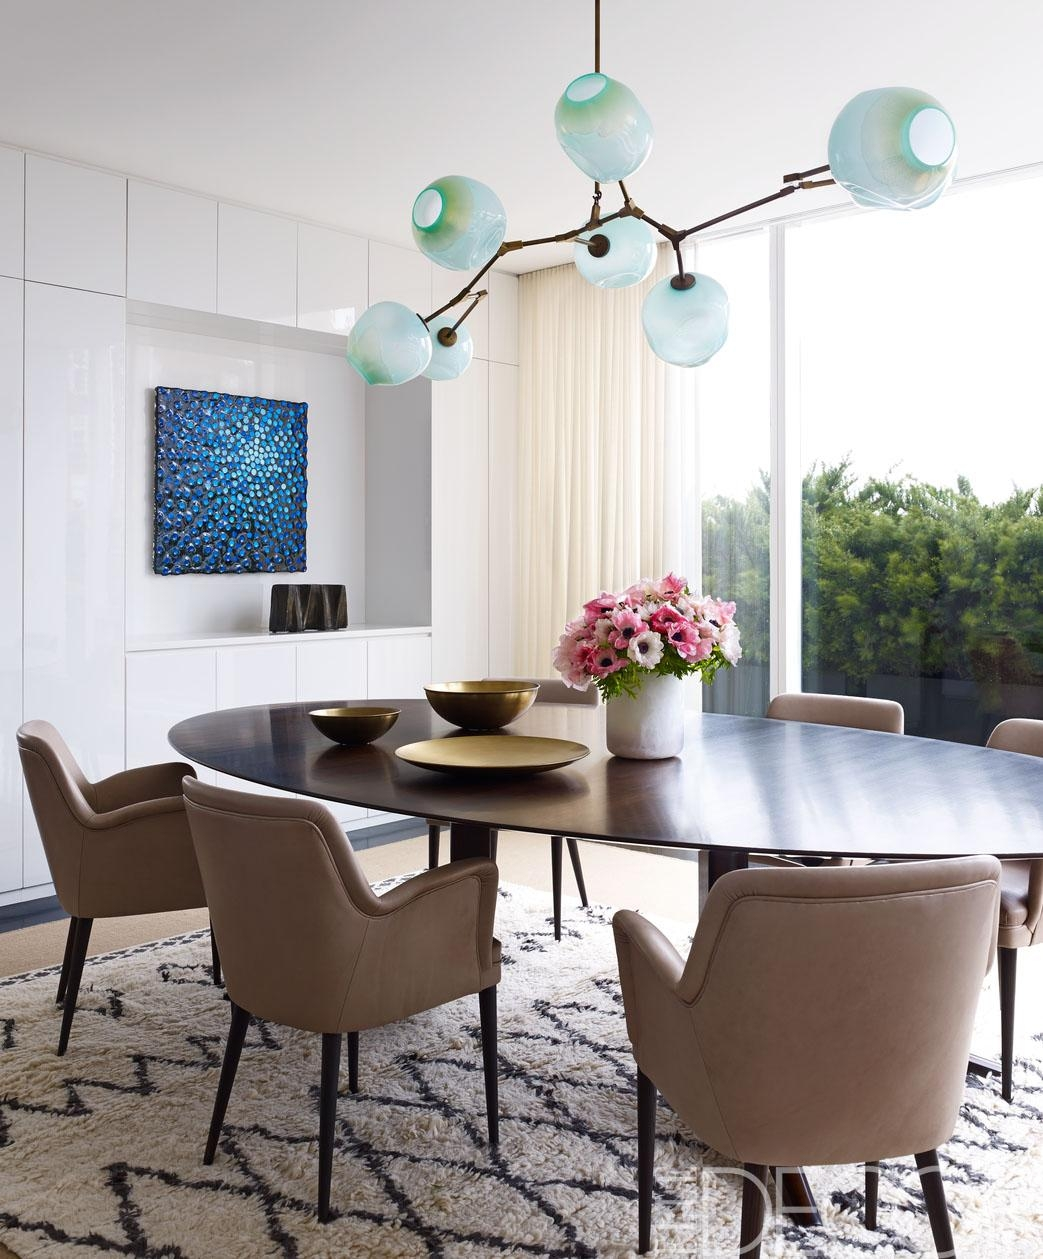 25 Modern Dining Room Decorating Ideas – Contemporary Dining Room Inside Modern Wall Art For Dining Room (Image 4 of 20)